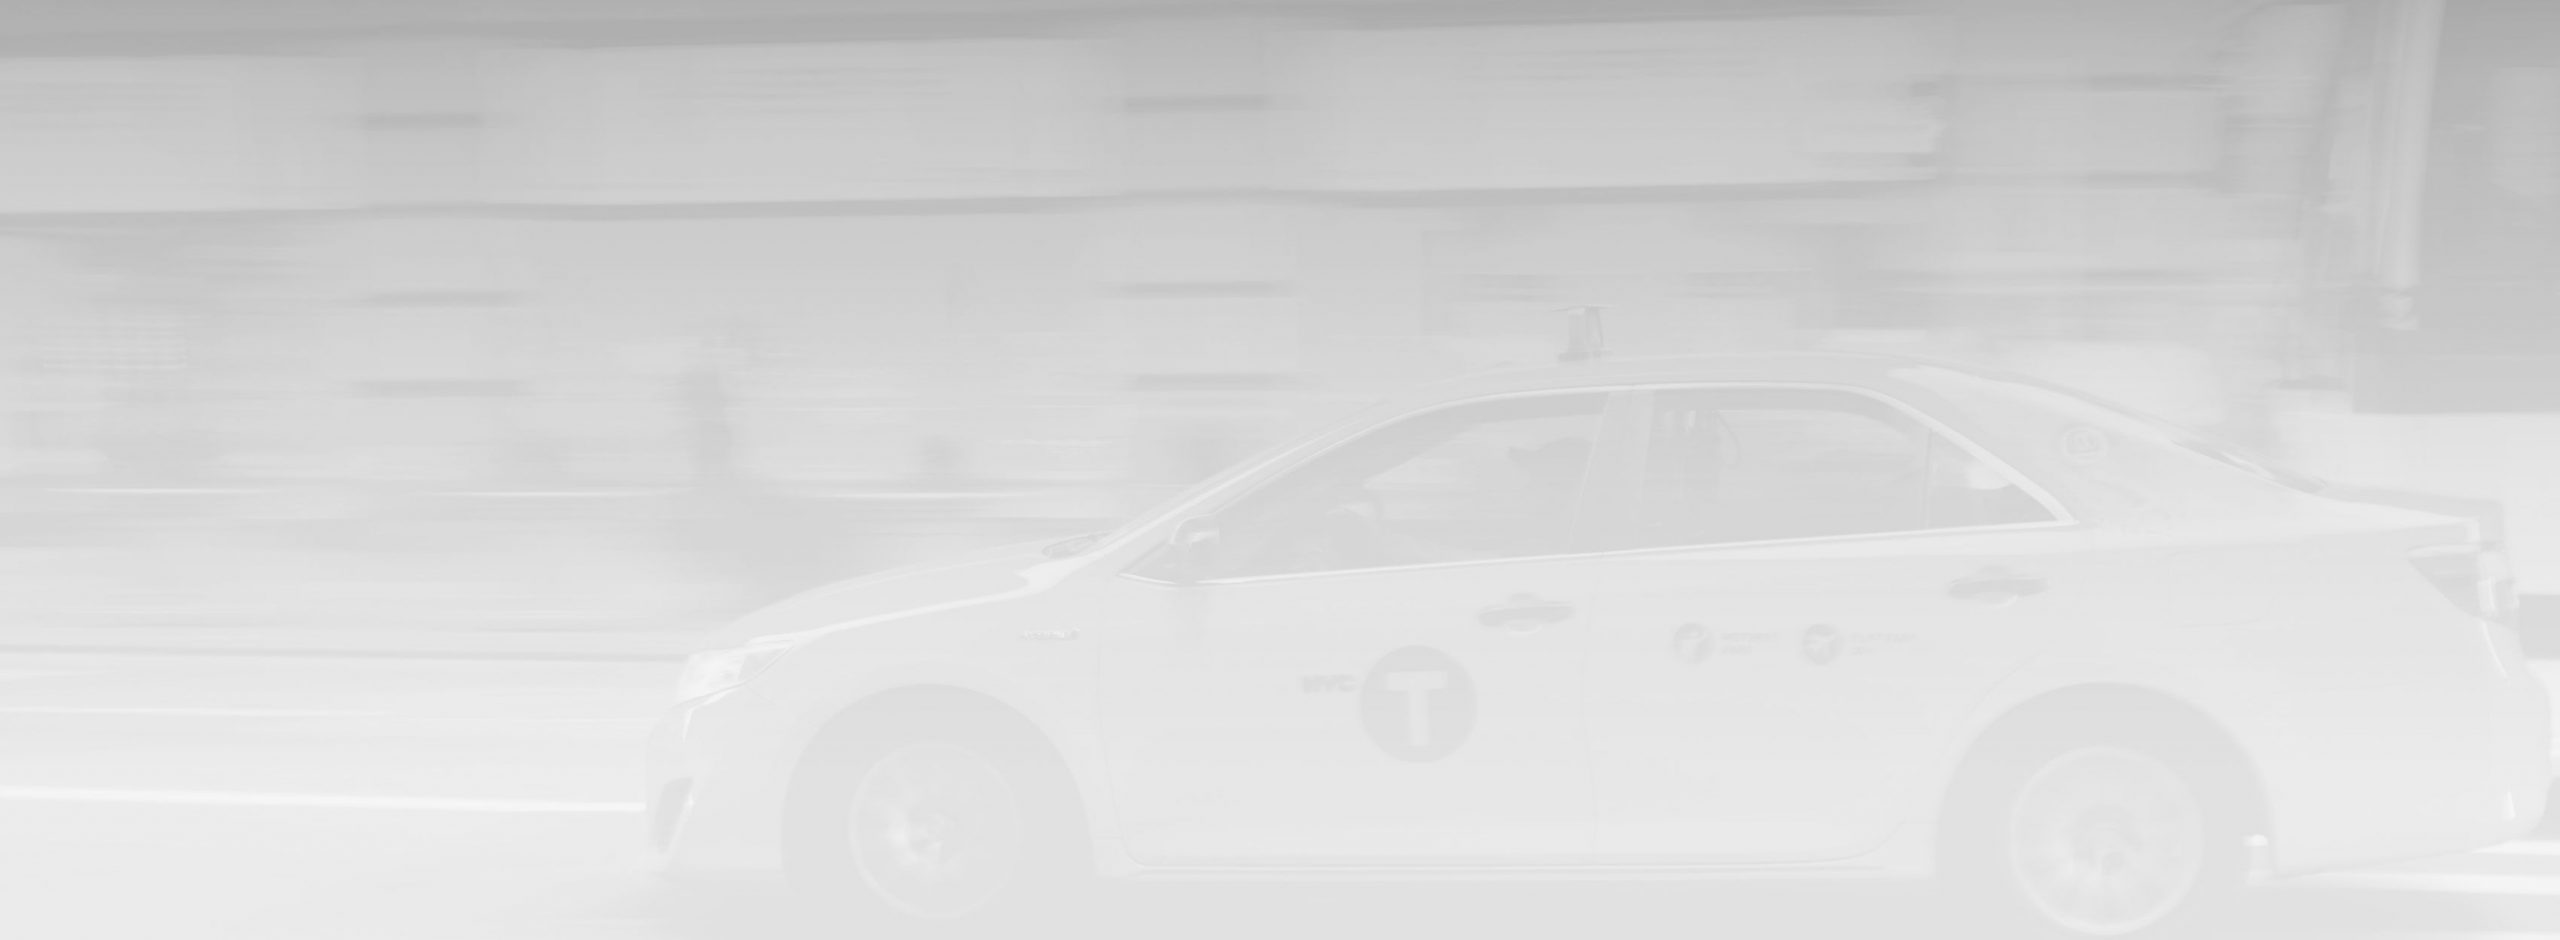 avada-taxi-customers-served-background